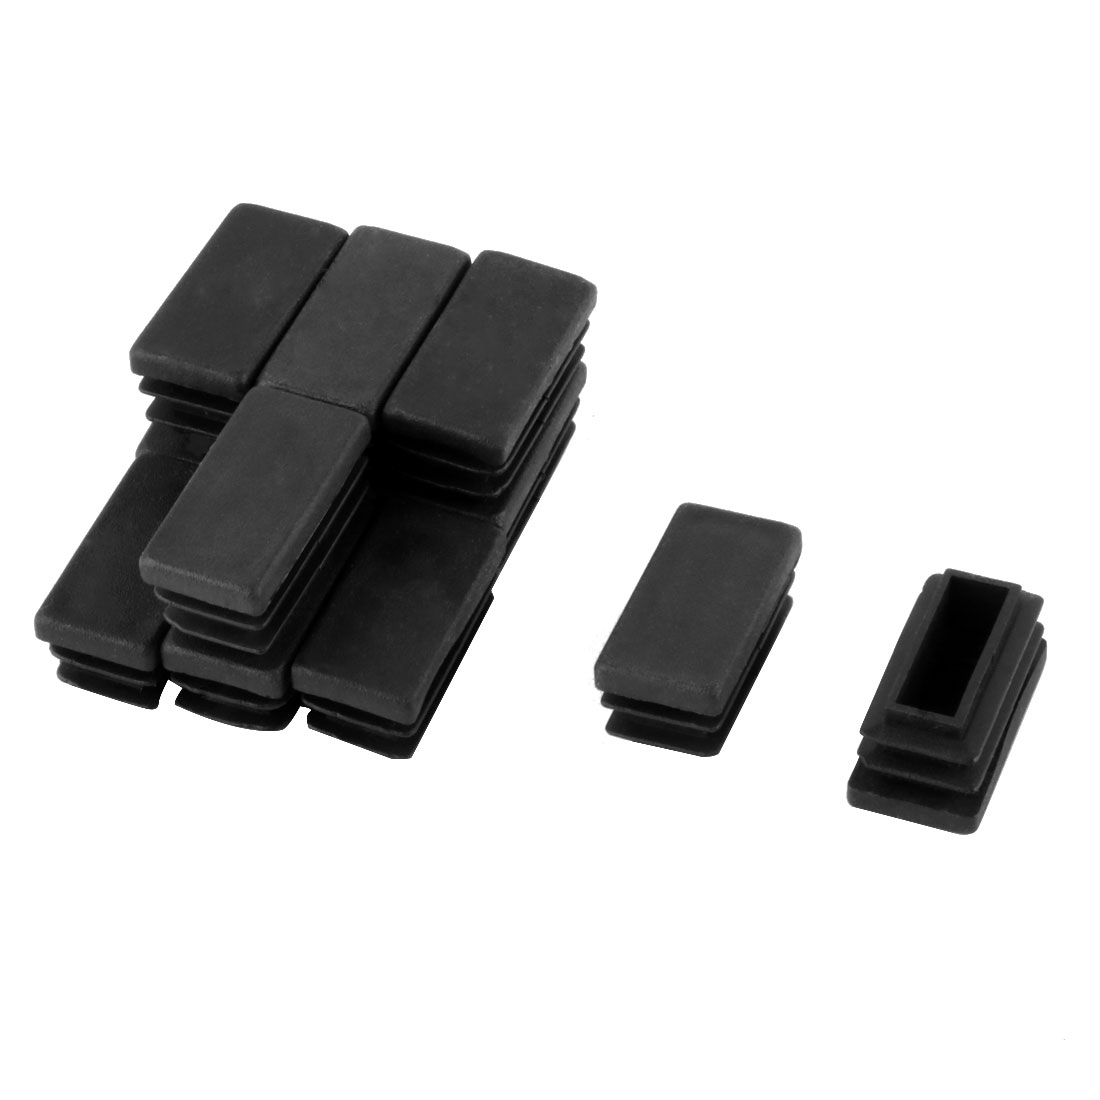 12 Pcs Black Plastic Rectangle Blanking End Caps Tubing Tube Inserts 15mm x 30mm